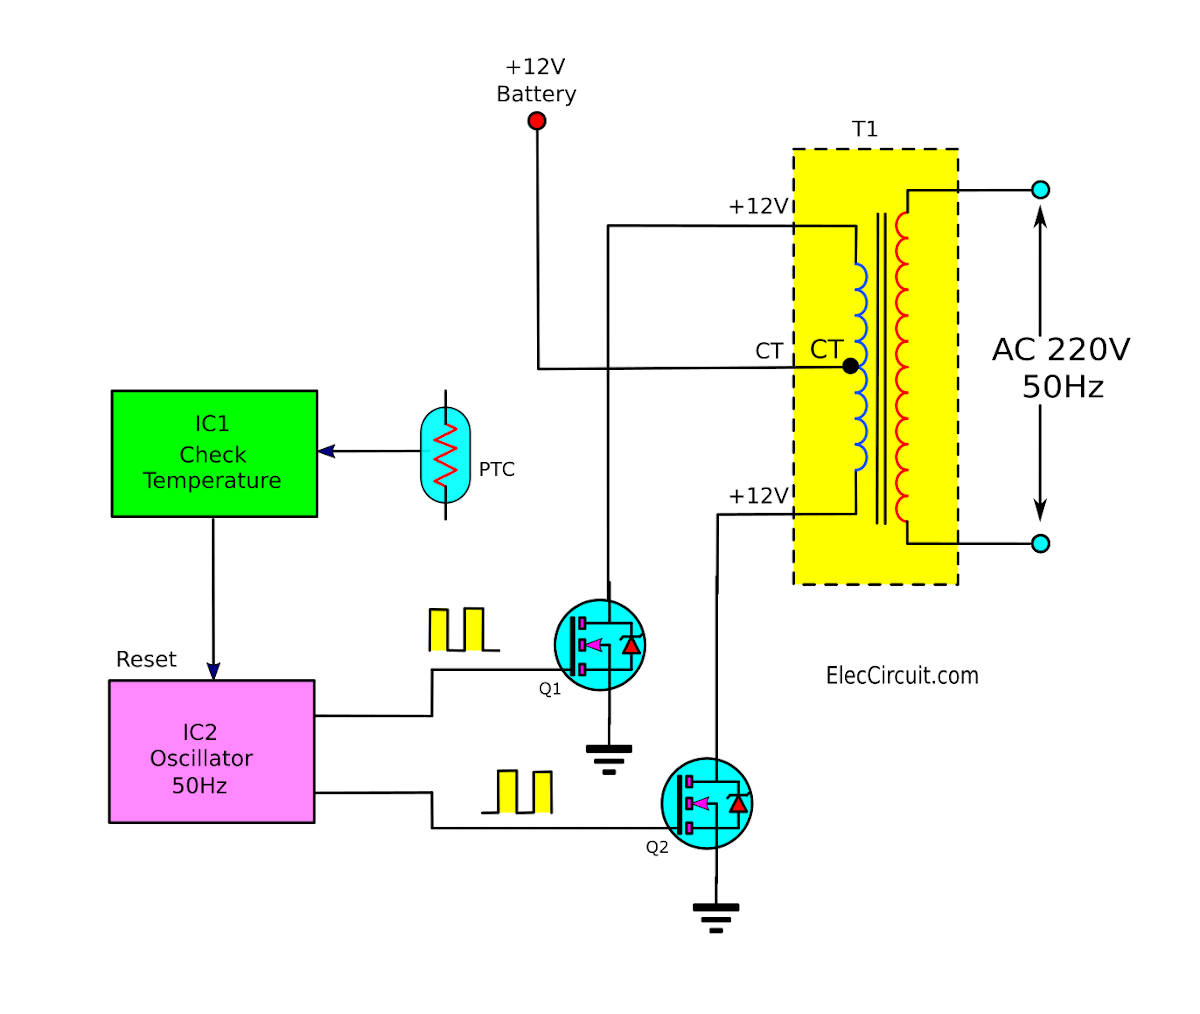 Operation Of Watt Inverter Diagram Electronic Projects Circuits - Circuit diagram of an inverter